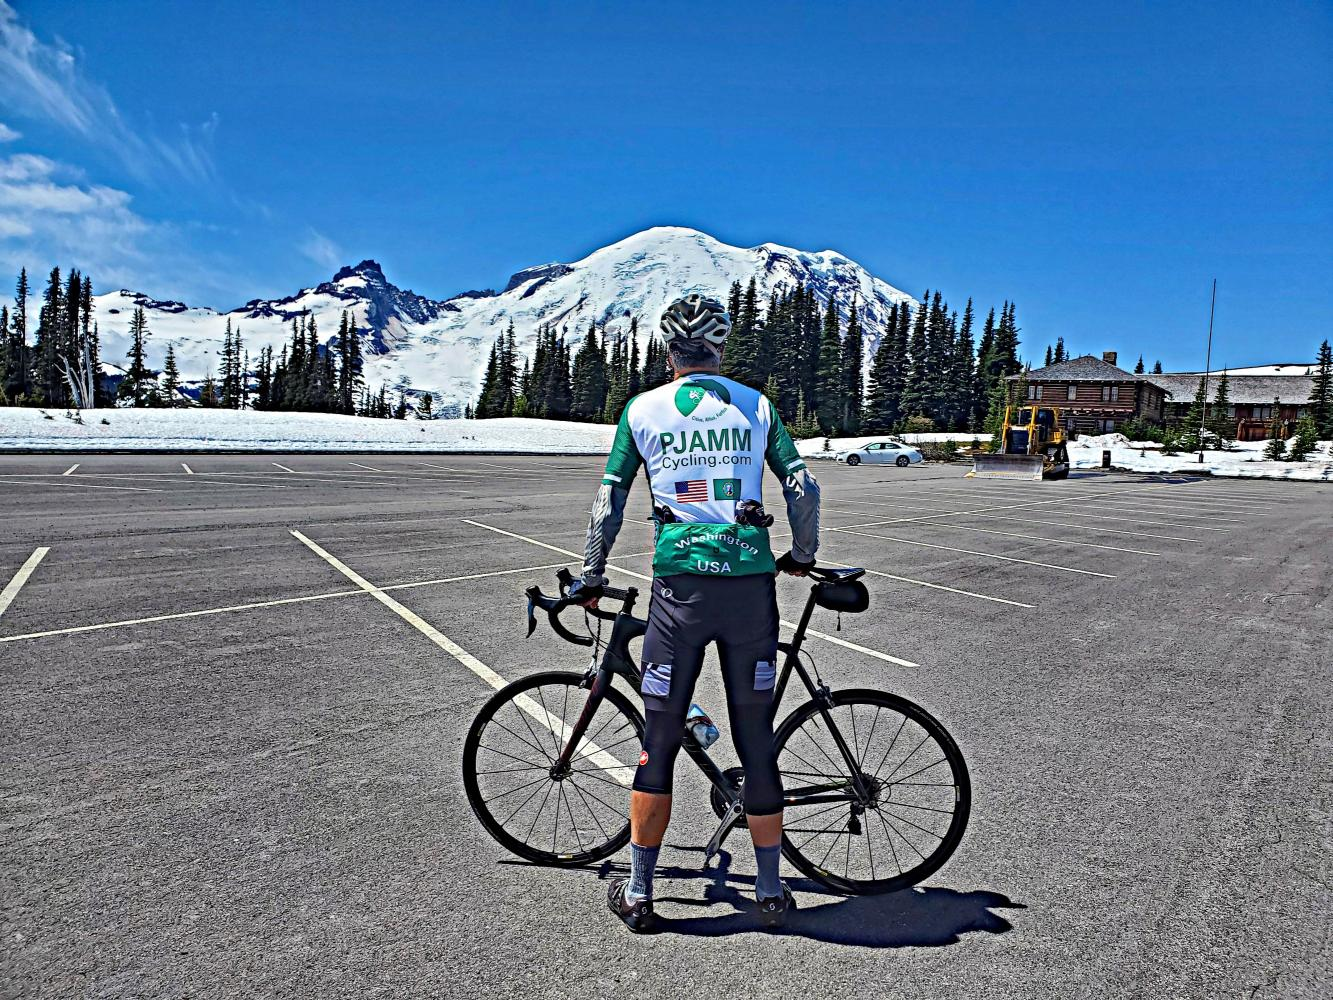 Mt. Rainier (Sunrise VC) Bike Climb - PJAMM Cycling